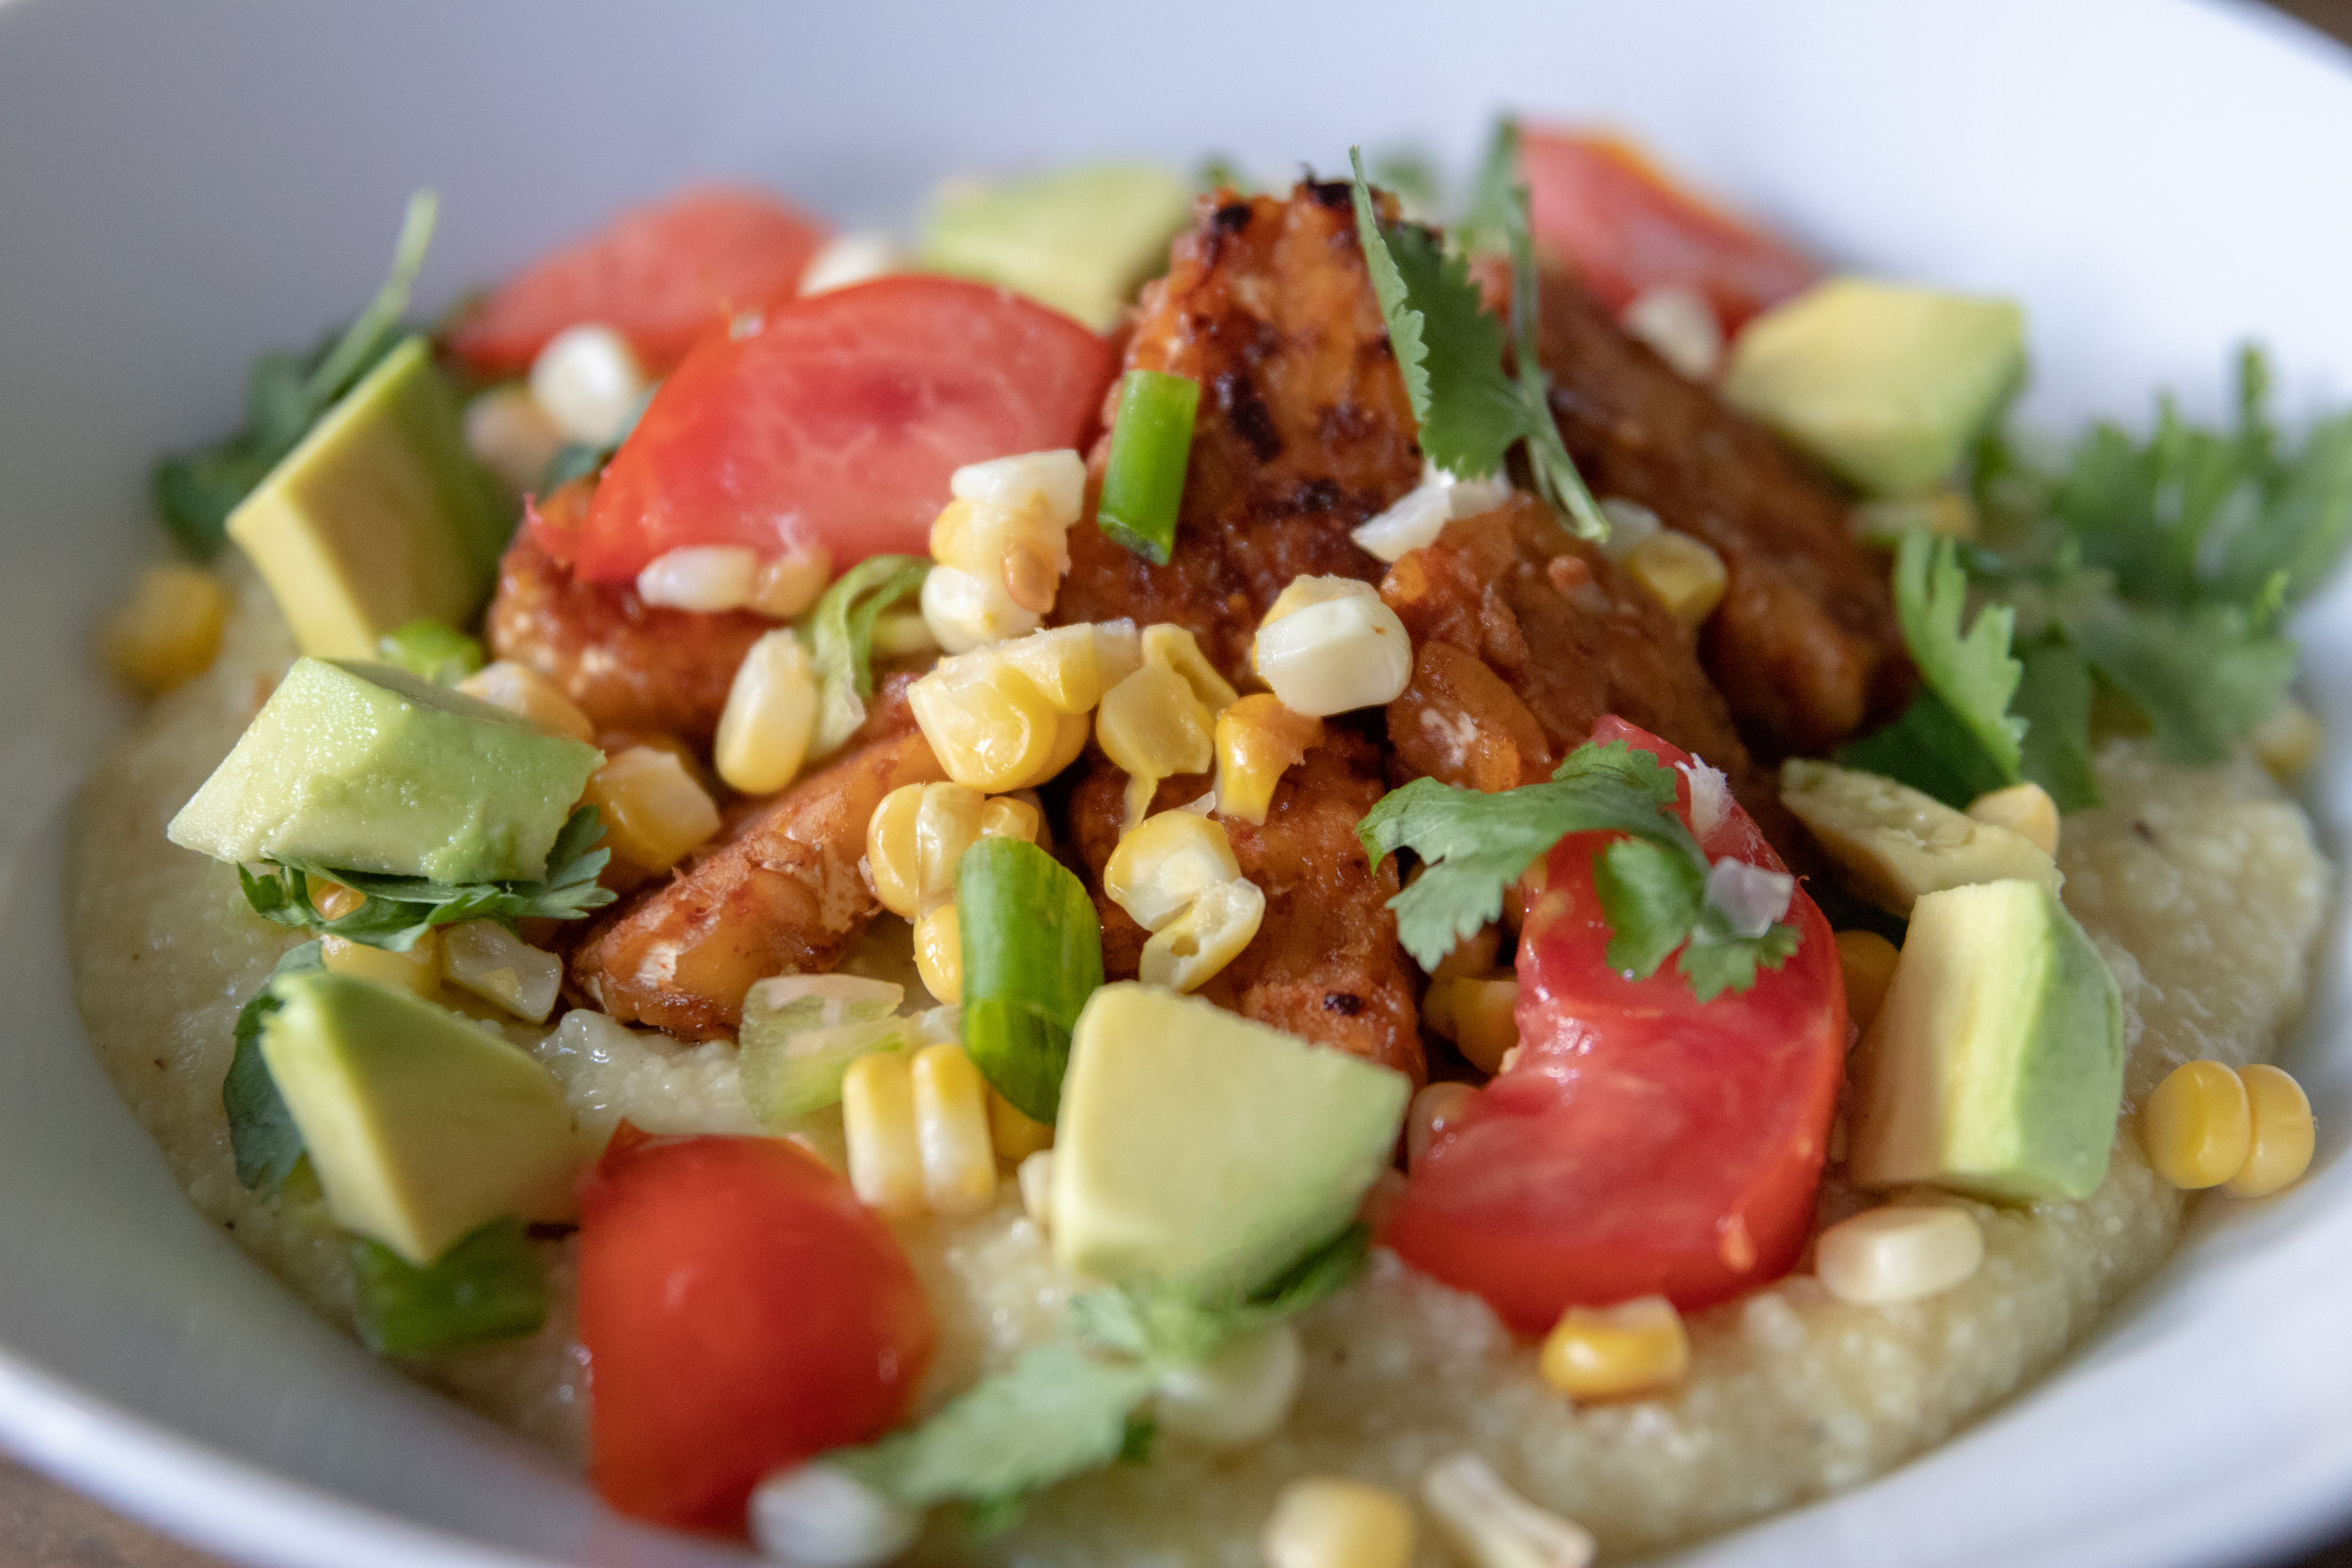 A bowl of grits topped with tempeh, corn, tomatoes, and scallions.